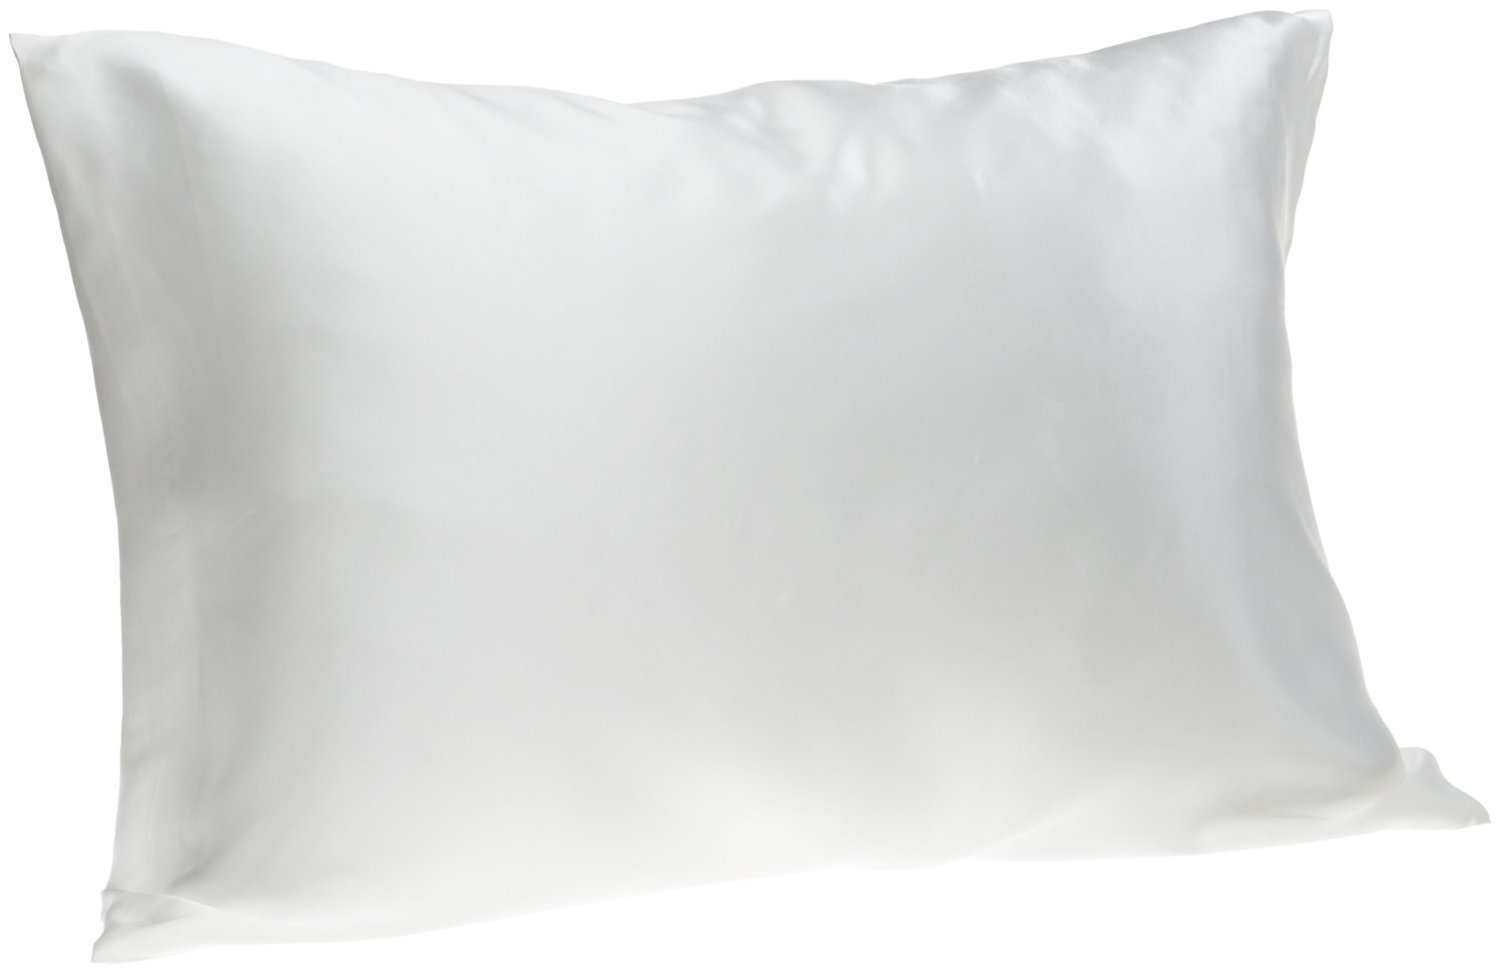 Amazon.com: Spasilk 100% Pure Silk Facial Beauty Pillowcase, Standard/Queen  Size Natural While: Home & Kitchen